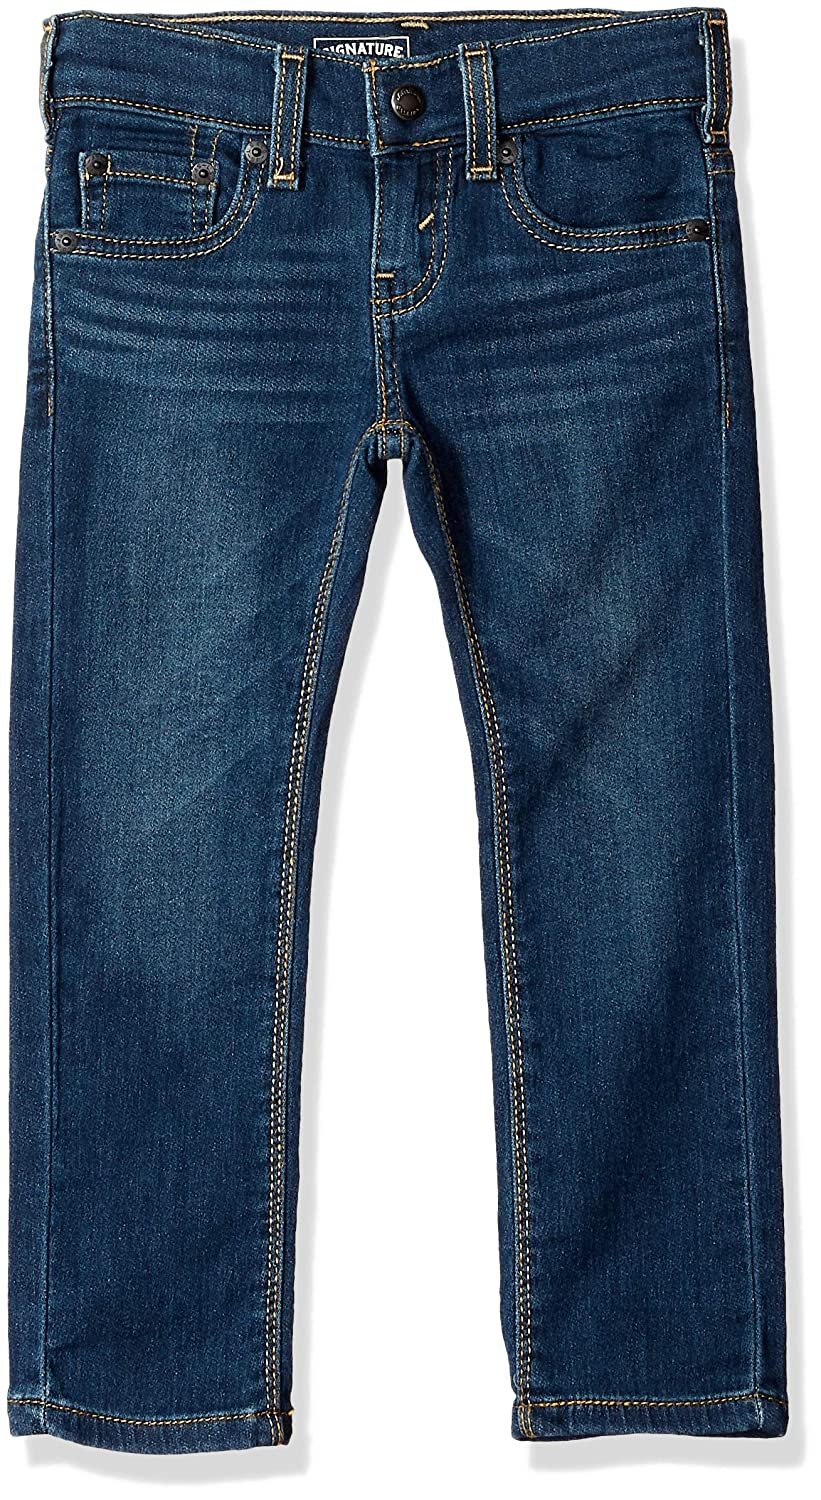 Signature by Levi Strauss & Co. Gold Label Boys' Skinny Fit Jeans.